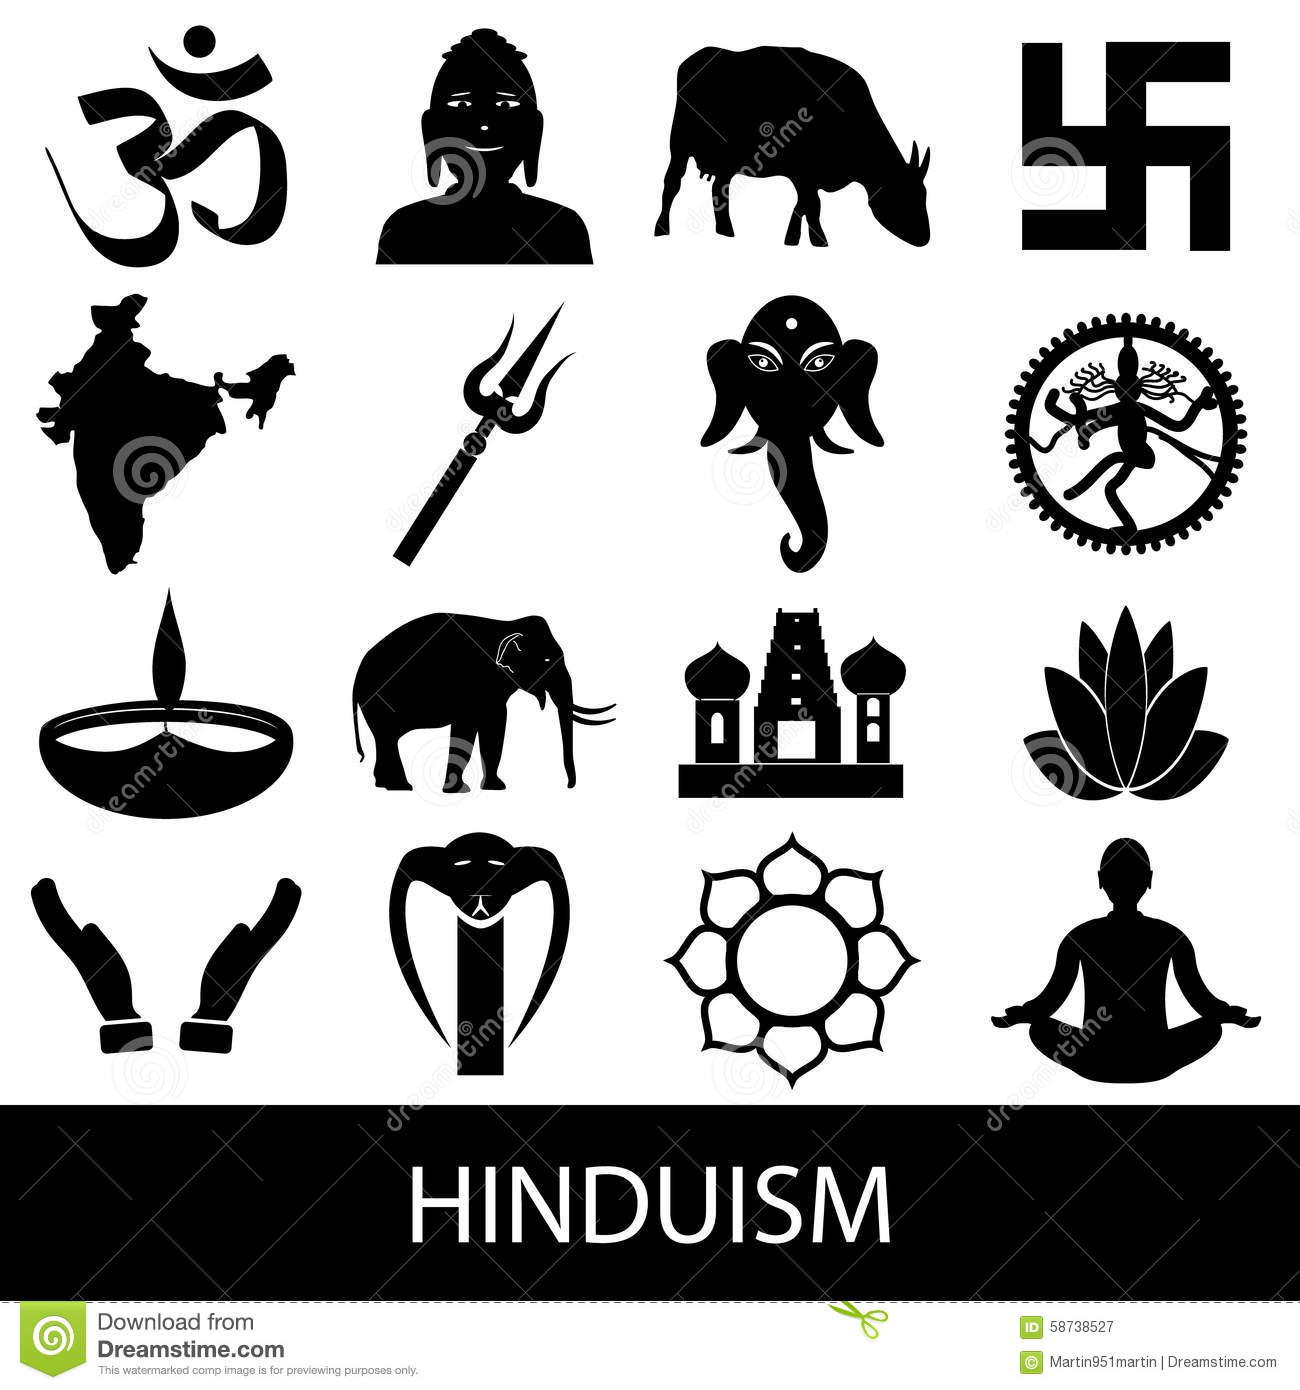 Hinduism religions symbols vector set of icons eps10 stock vector hinduism religions symbols vector set of icons eps10 buycottarizona